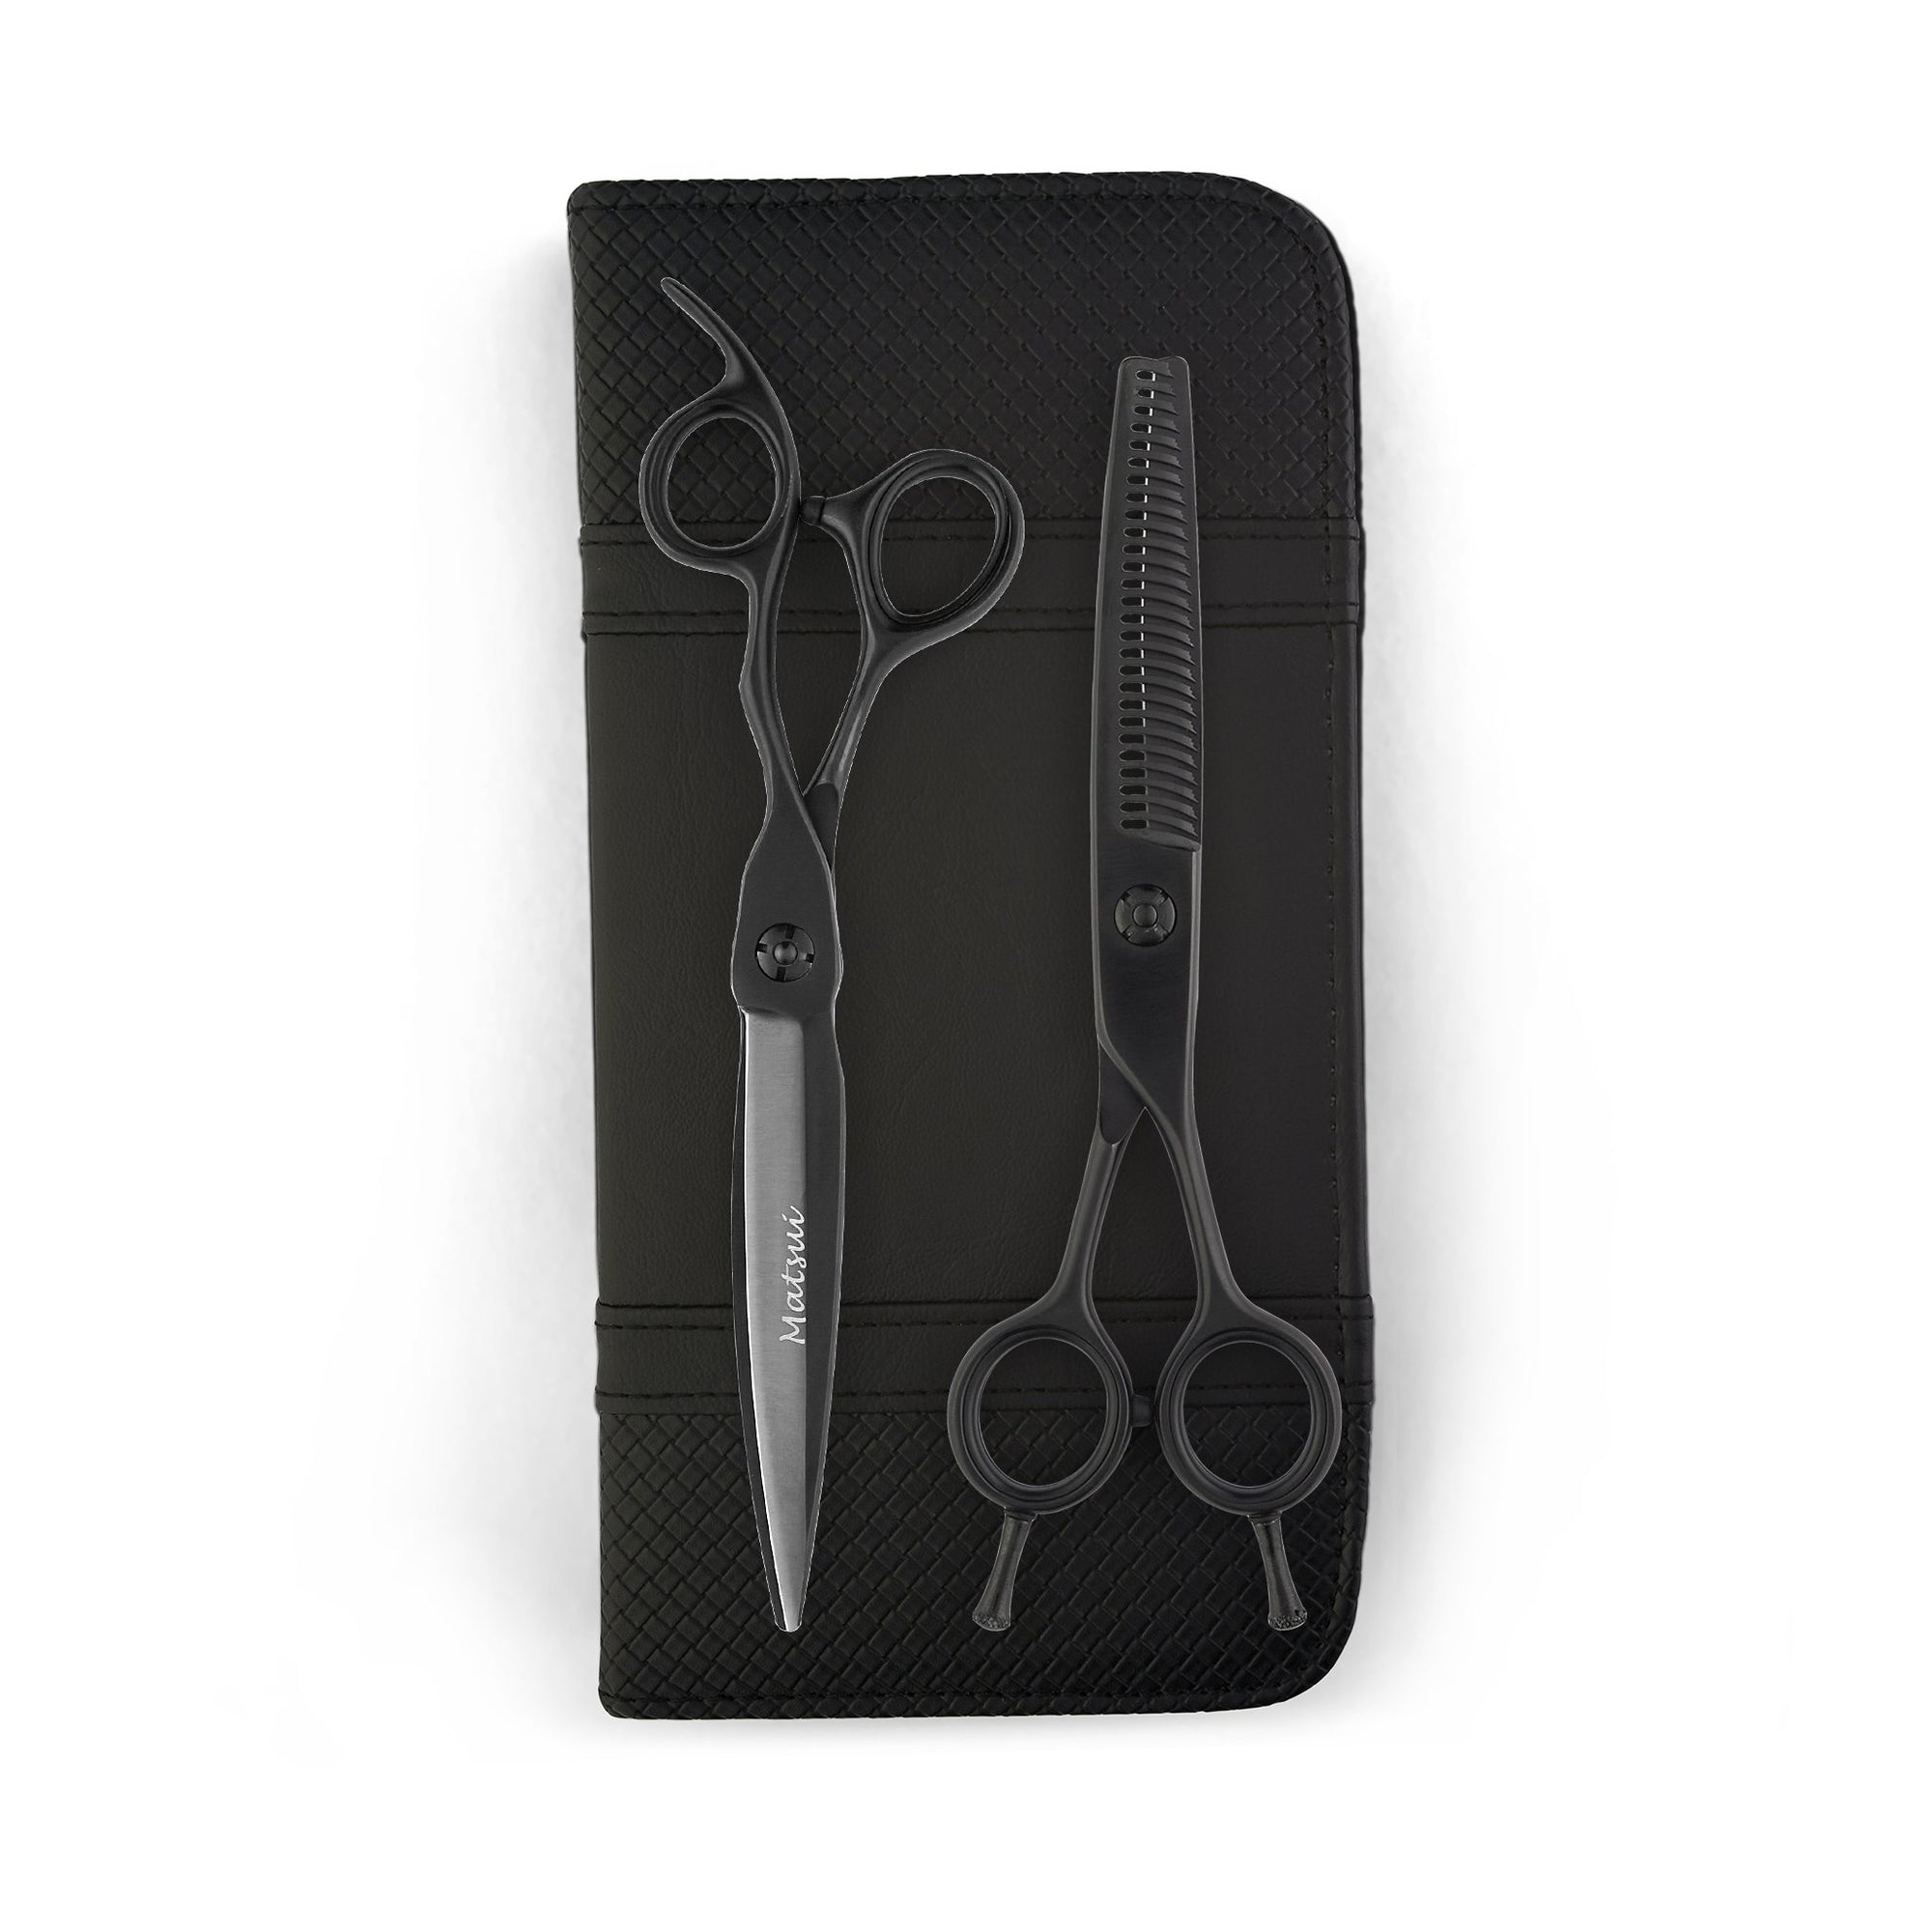 Matsui VG10 Sword Shear Thinner Combo - Matte Black - Scissor Tech USA